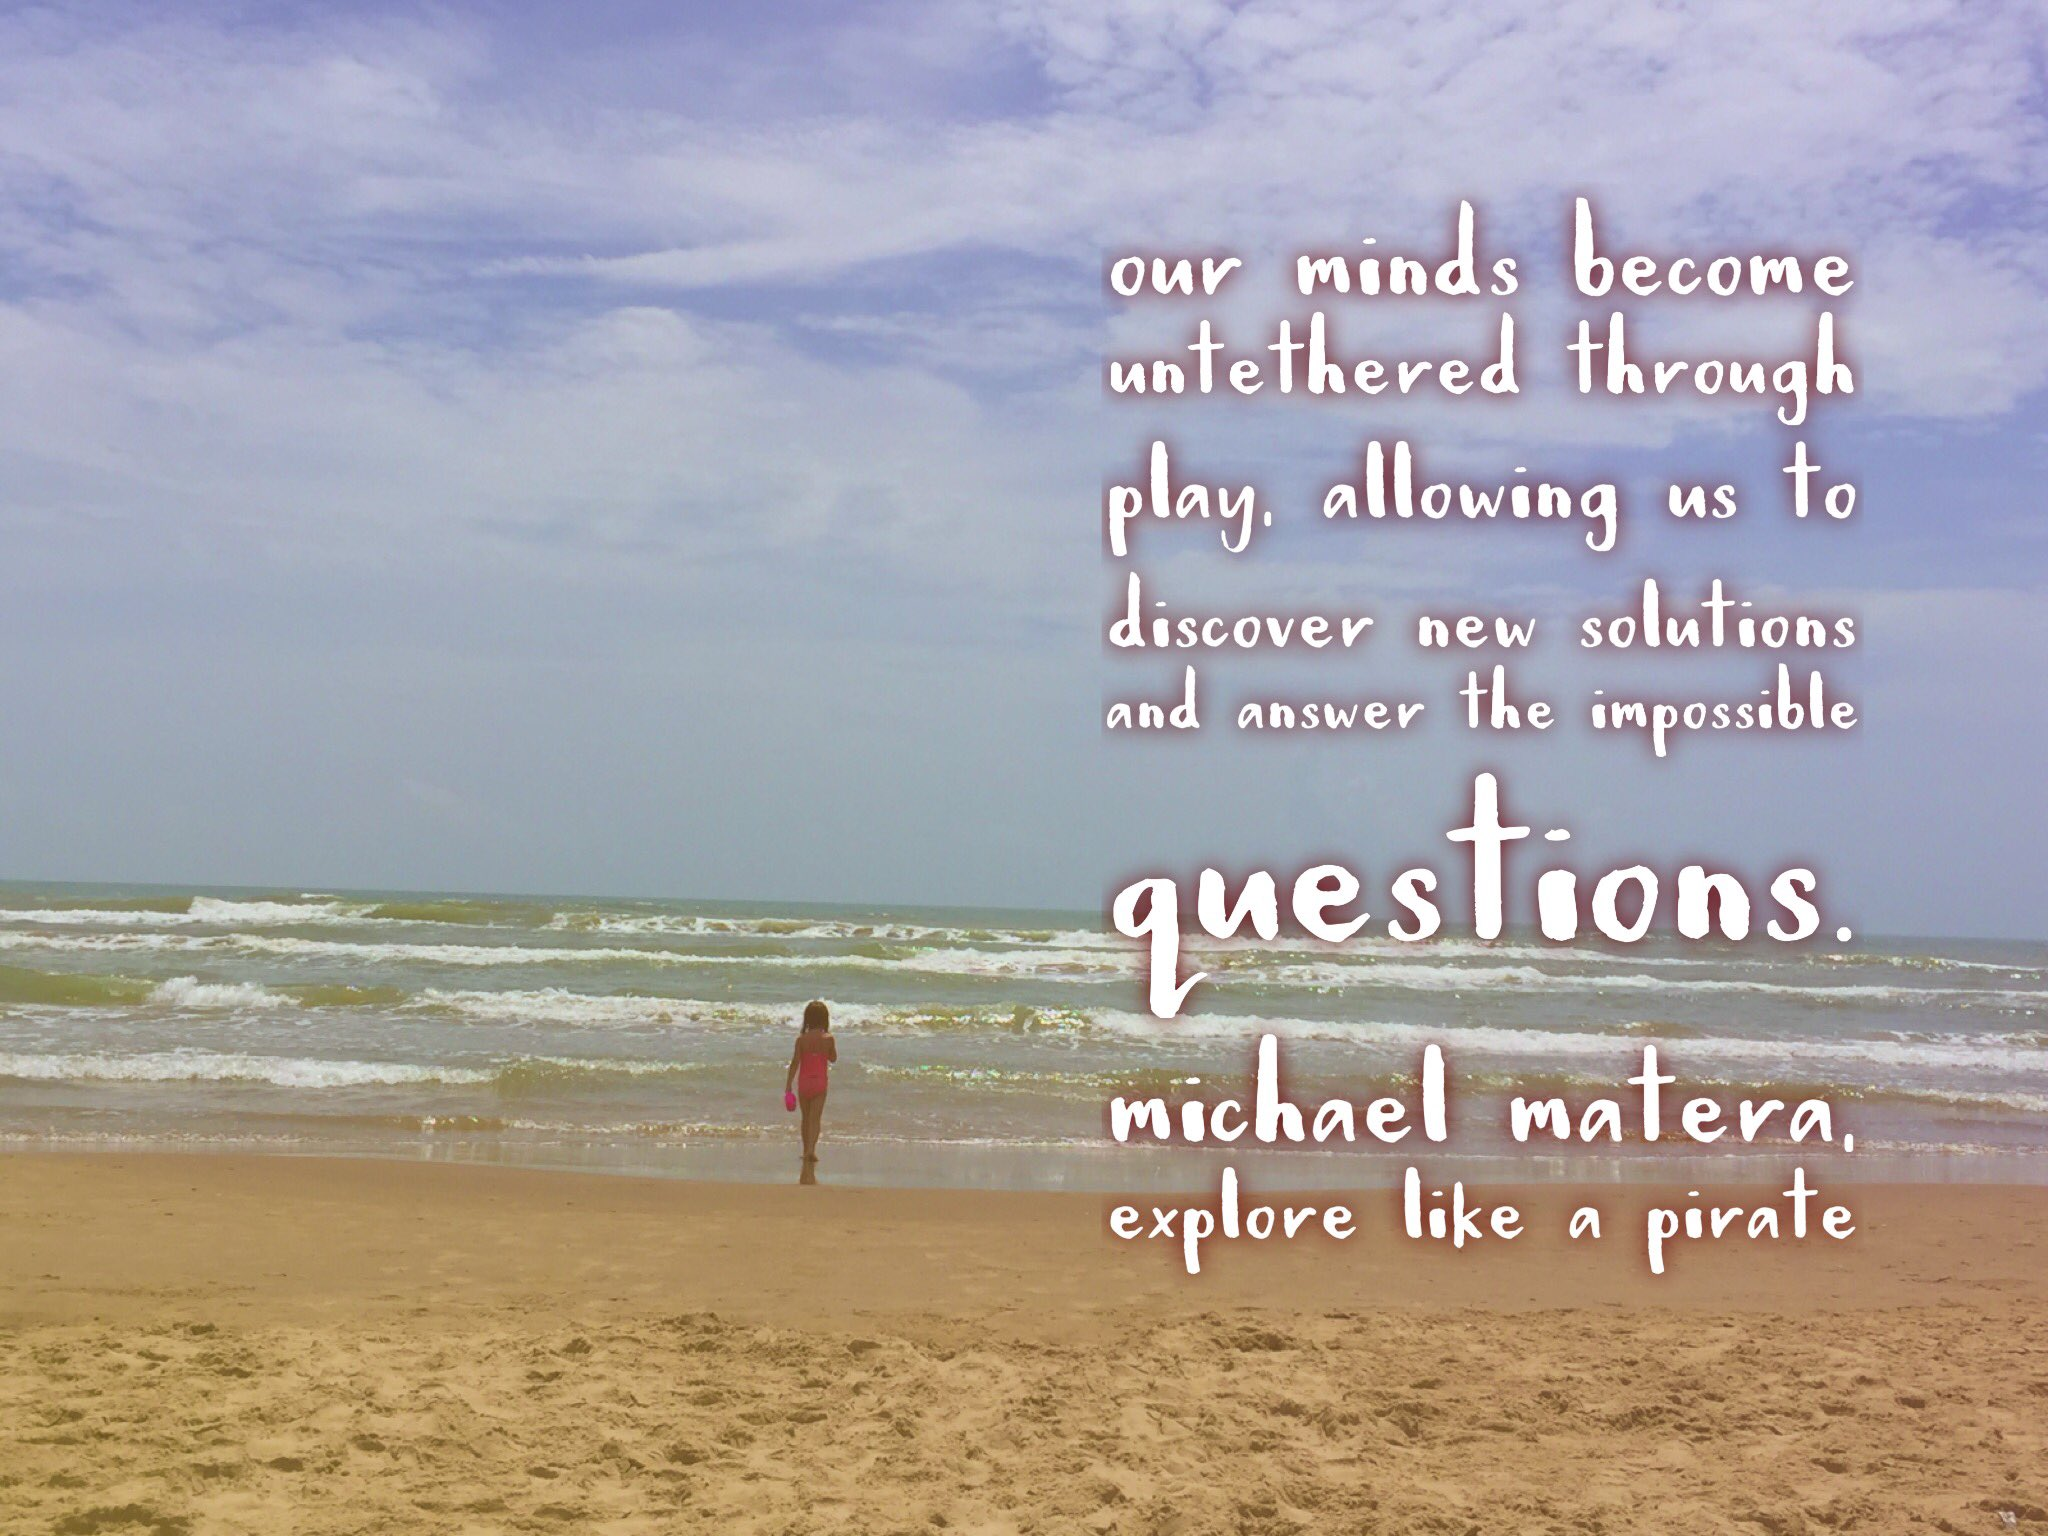 Love this quote from #XPLAP! & that's an original pic, too! #BeachReadingRocks! #tlap https://t.co/NQq6ifUc78